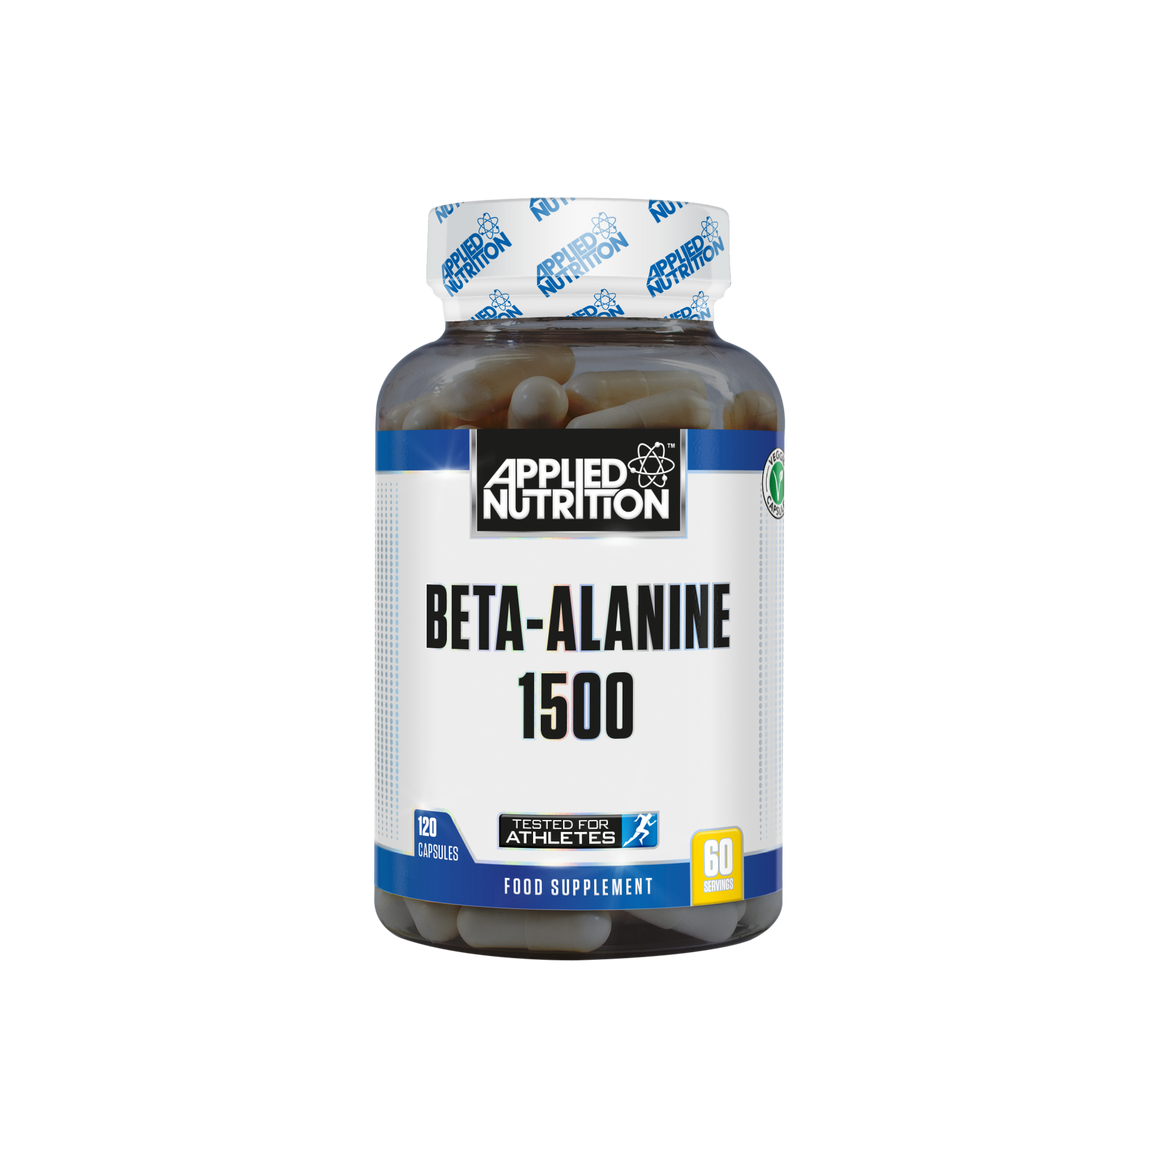 Applied Nutrition Beta-Alanine 1500mg -120 Capsules